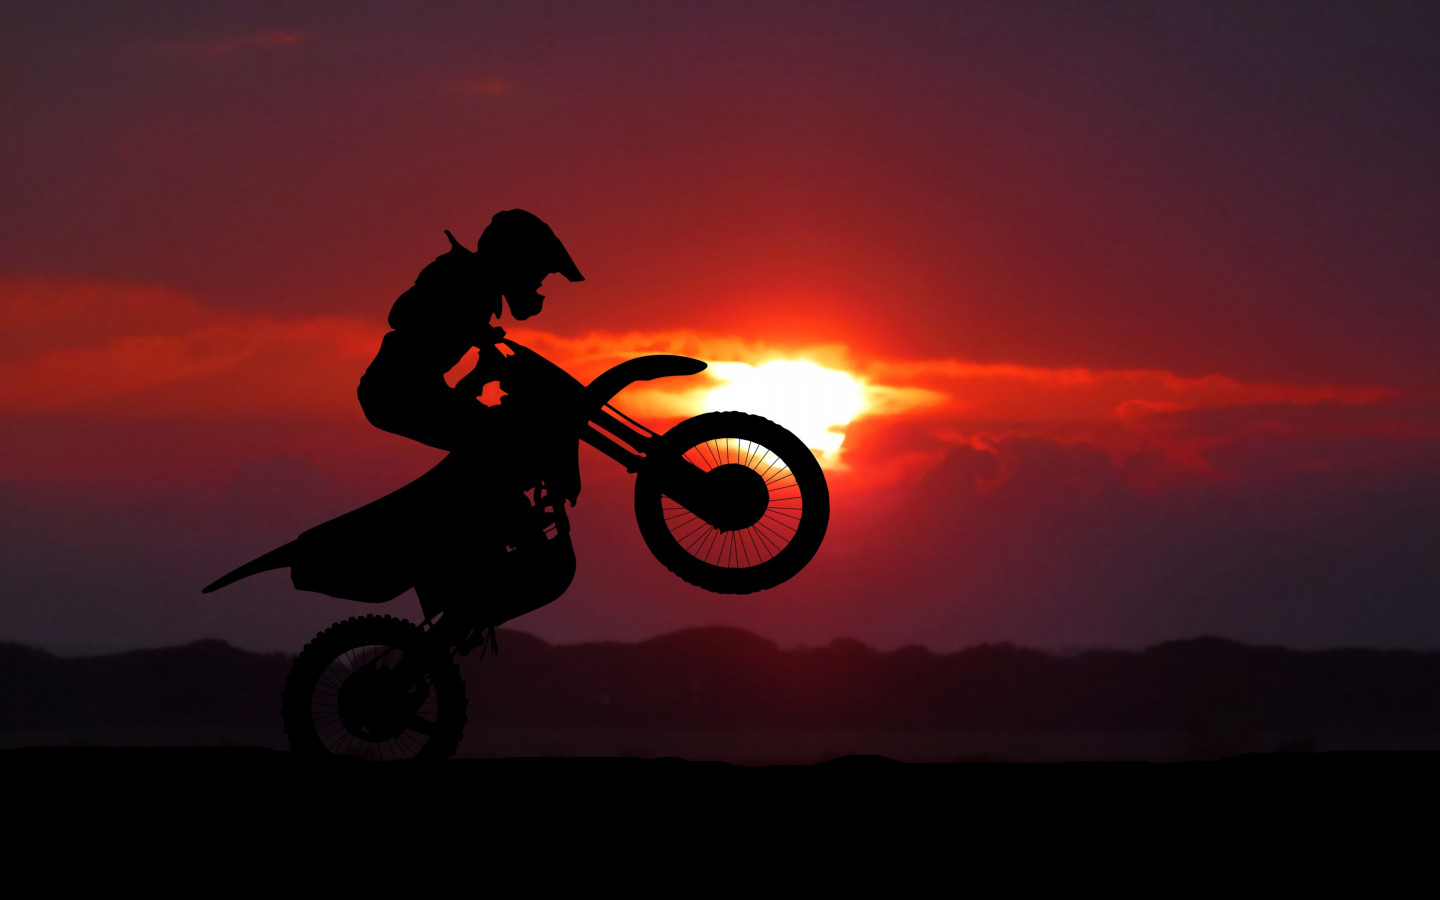 Biker on motorcycle at sunrise wallpaper 1440x900